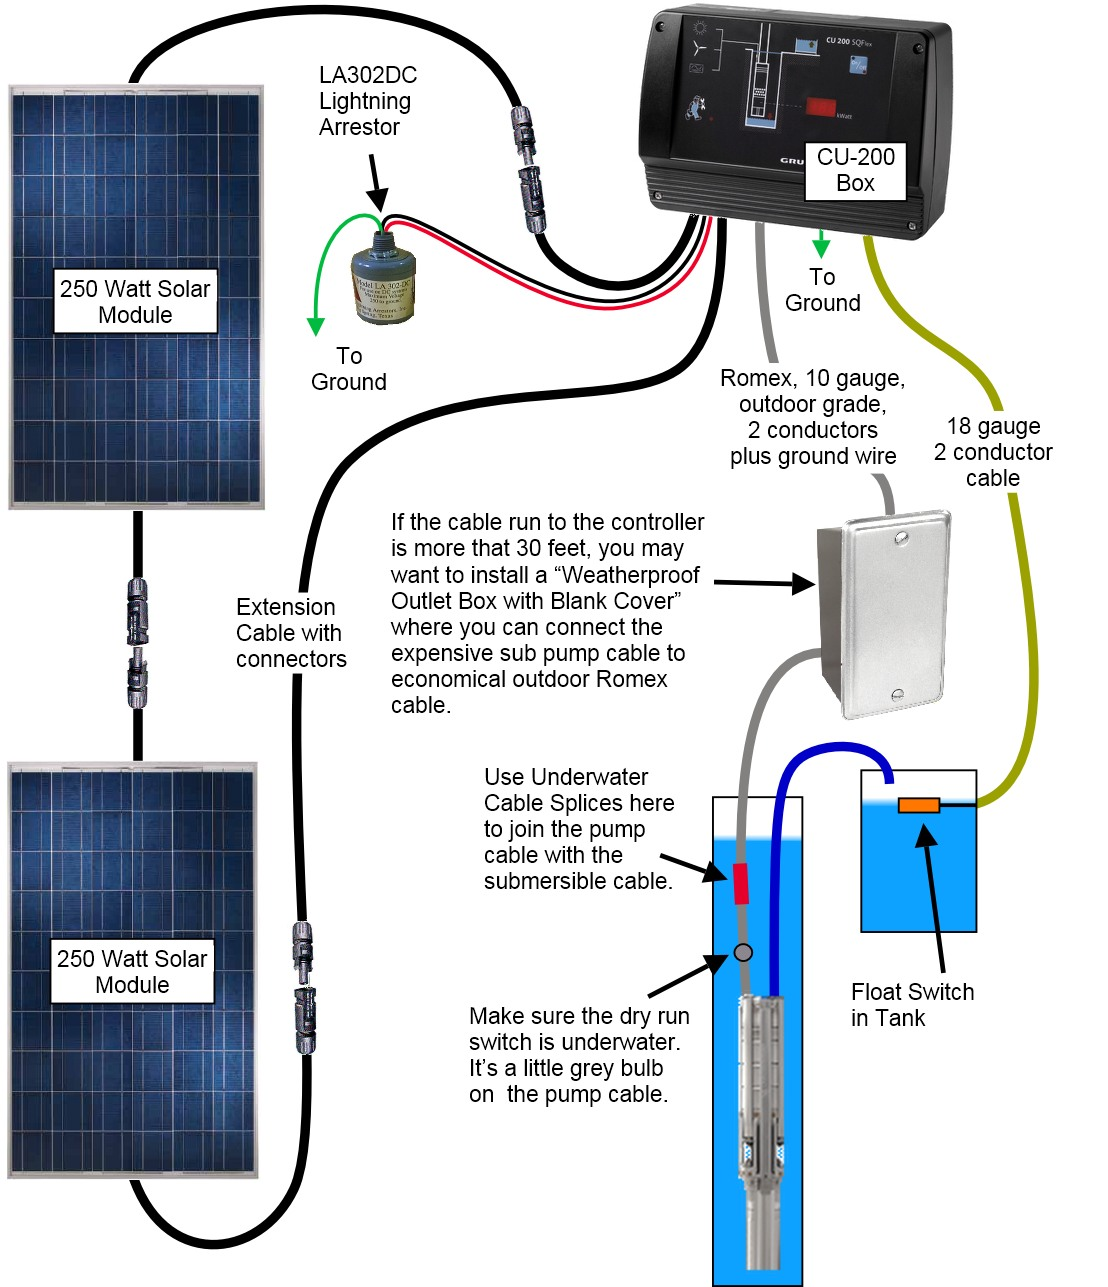 hight resolution of grundfos sqflex solar water pump wiring diagram grundfos booster pump wiring diagram grundfos pump wiring diagram